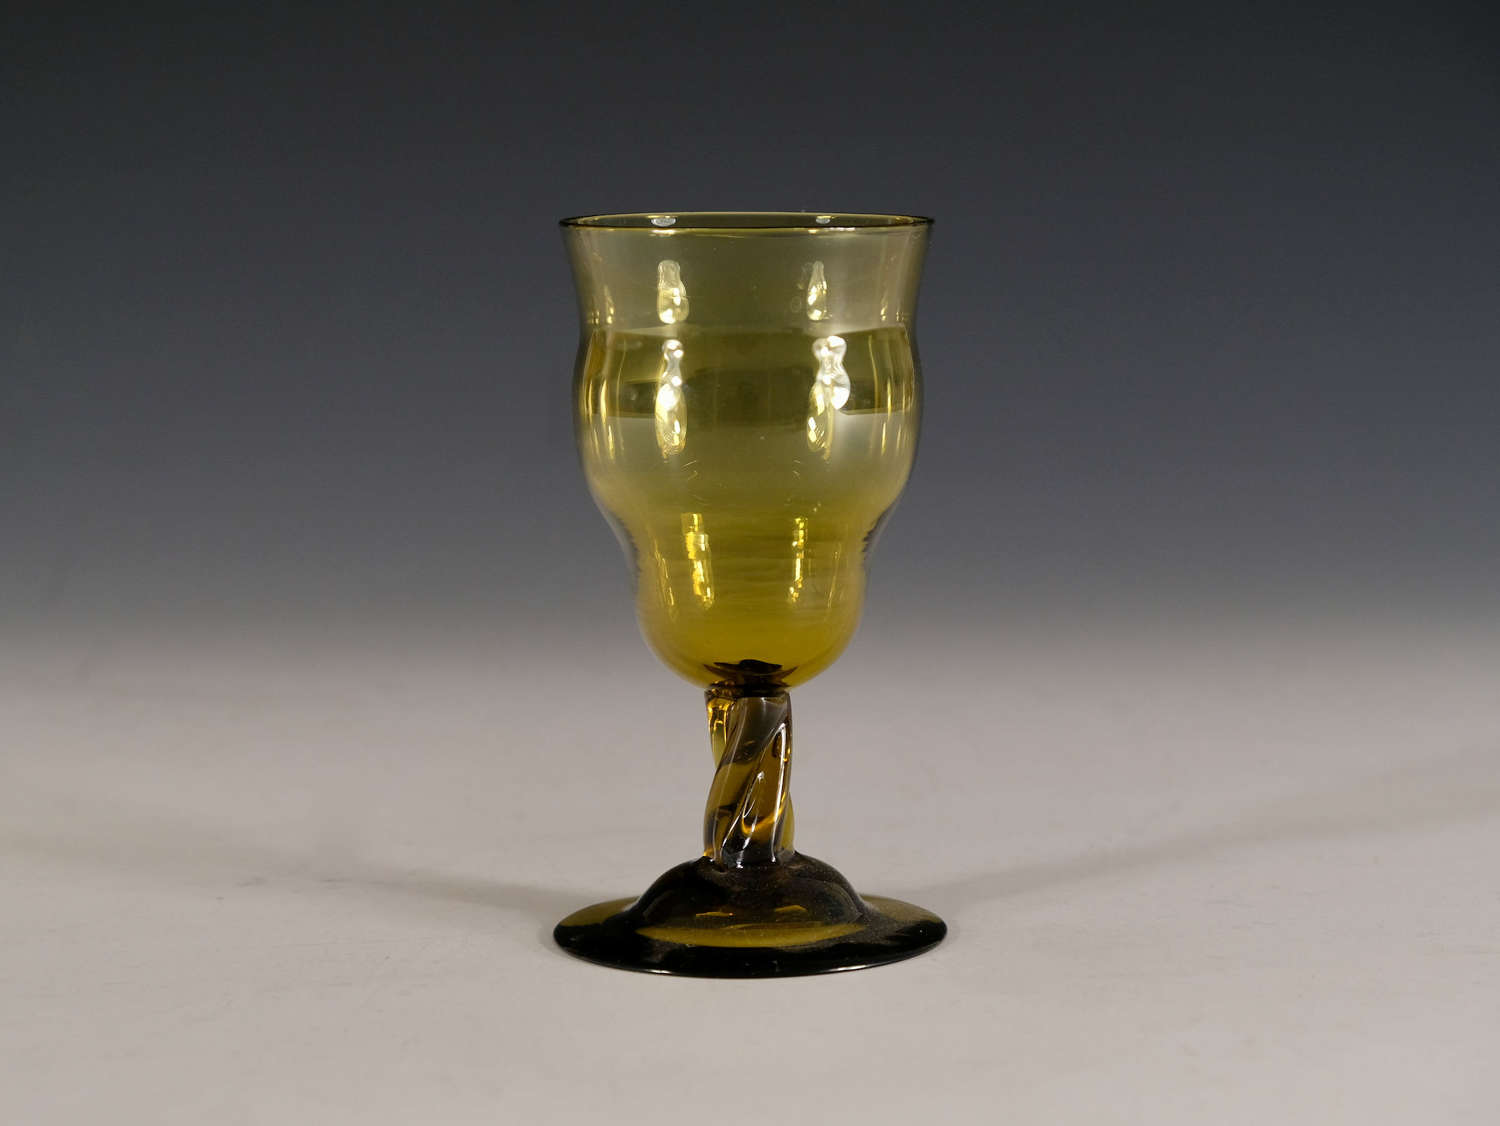 Antique wine glass by Philip Webb